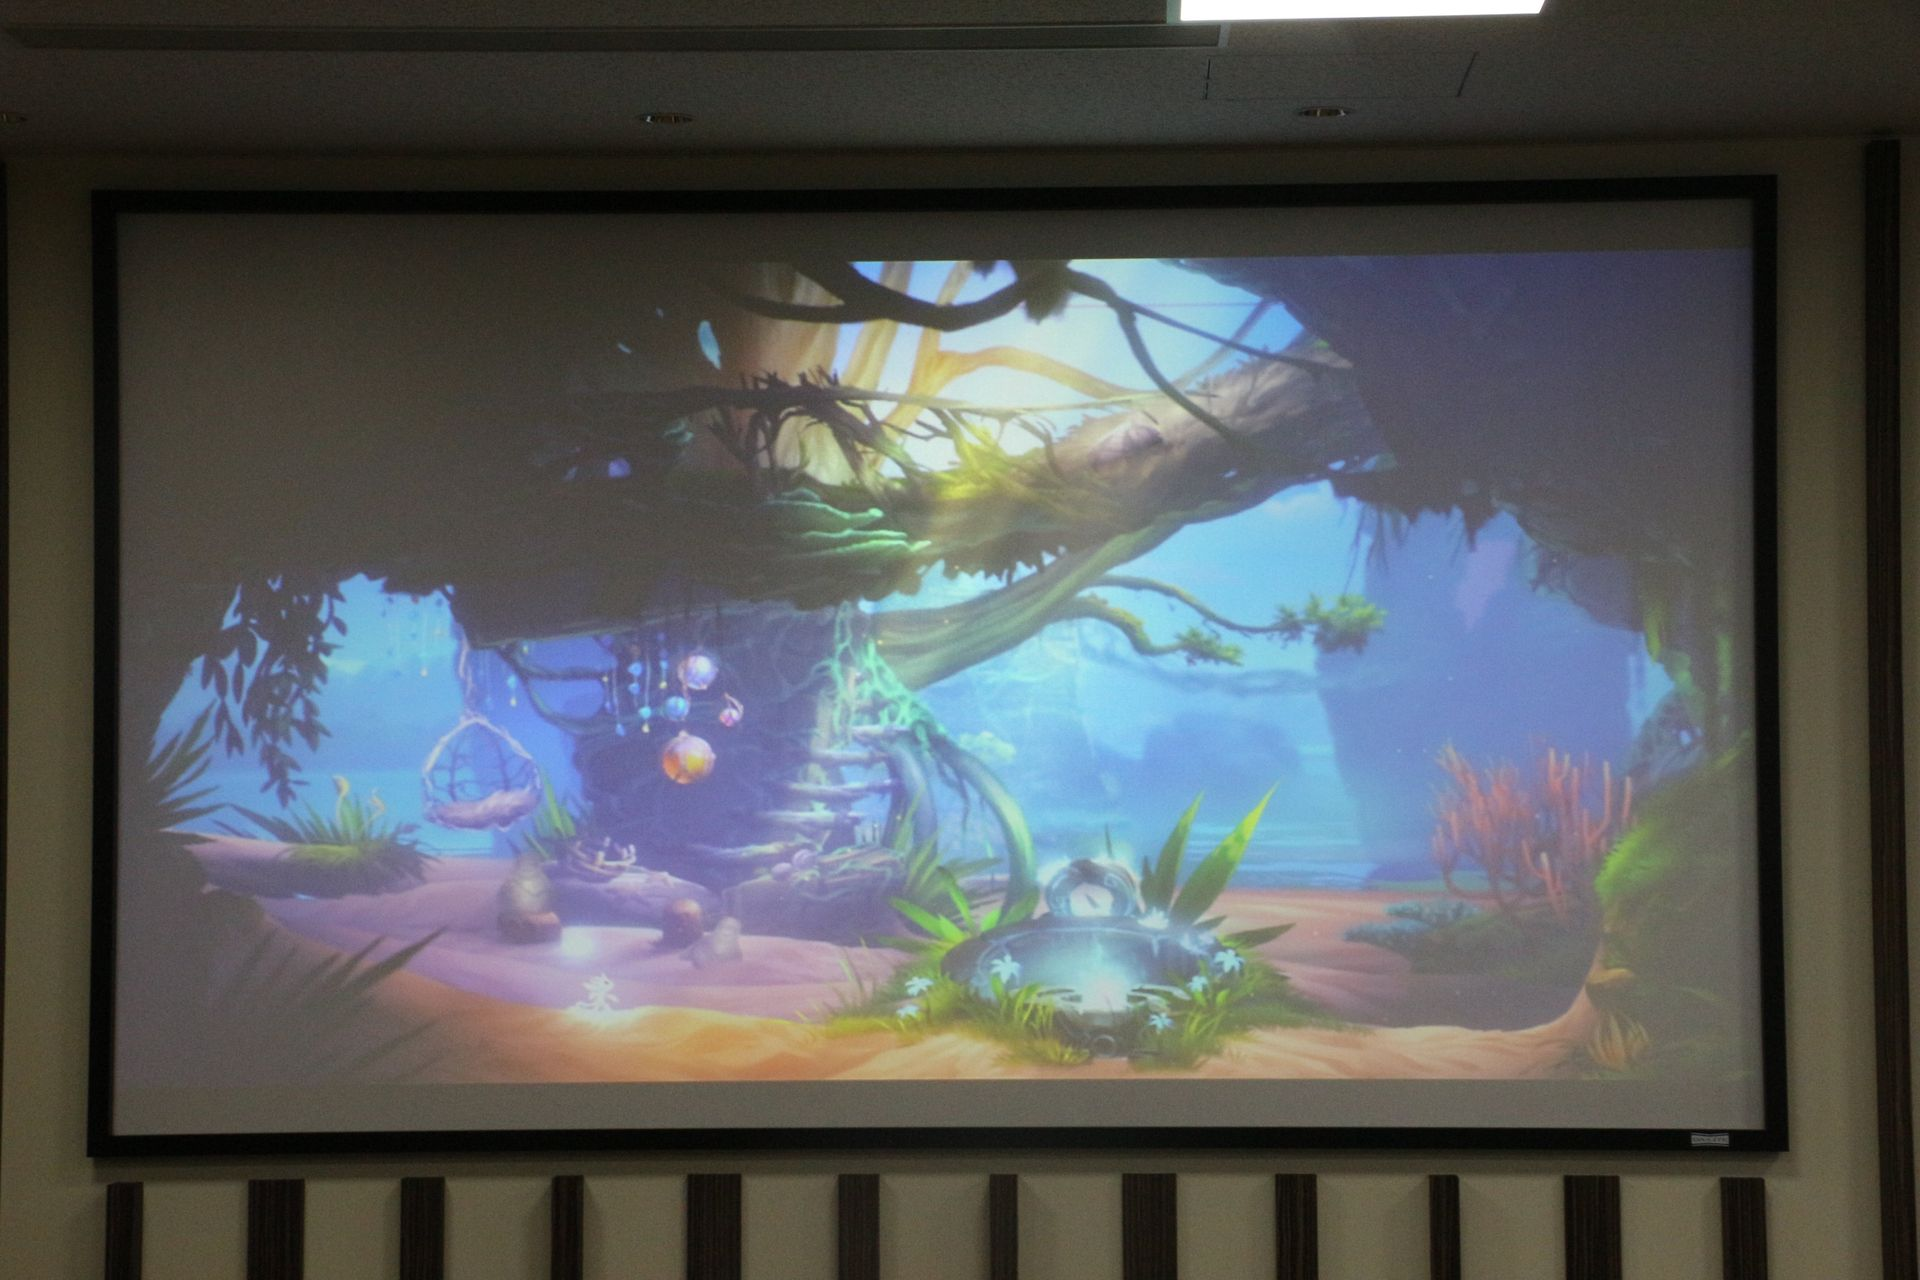 「Ori and the Blind Forest: Definitive Edition」。詳細は後日発表